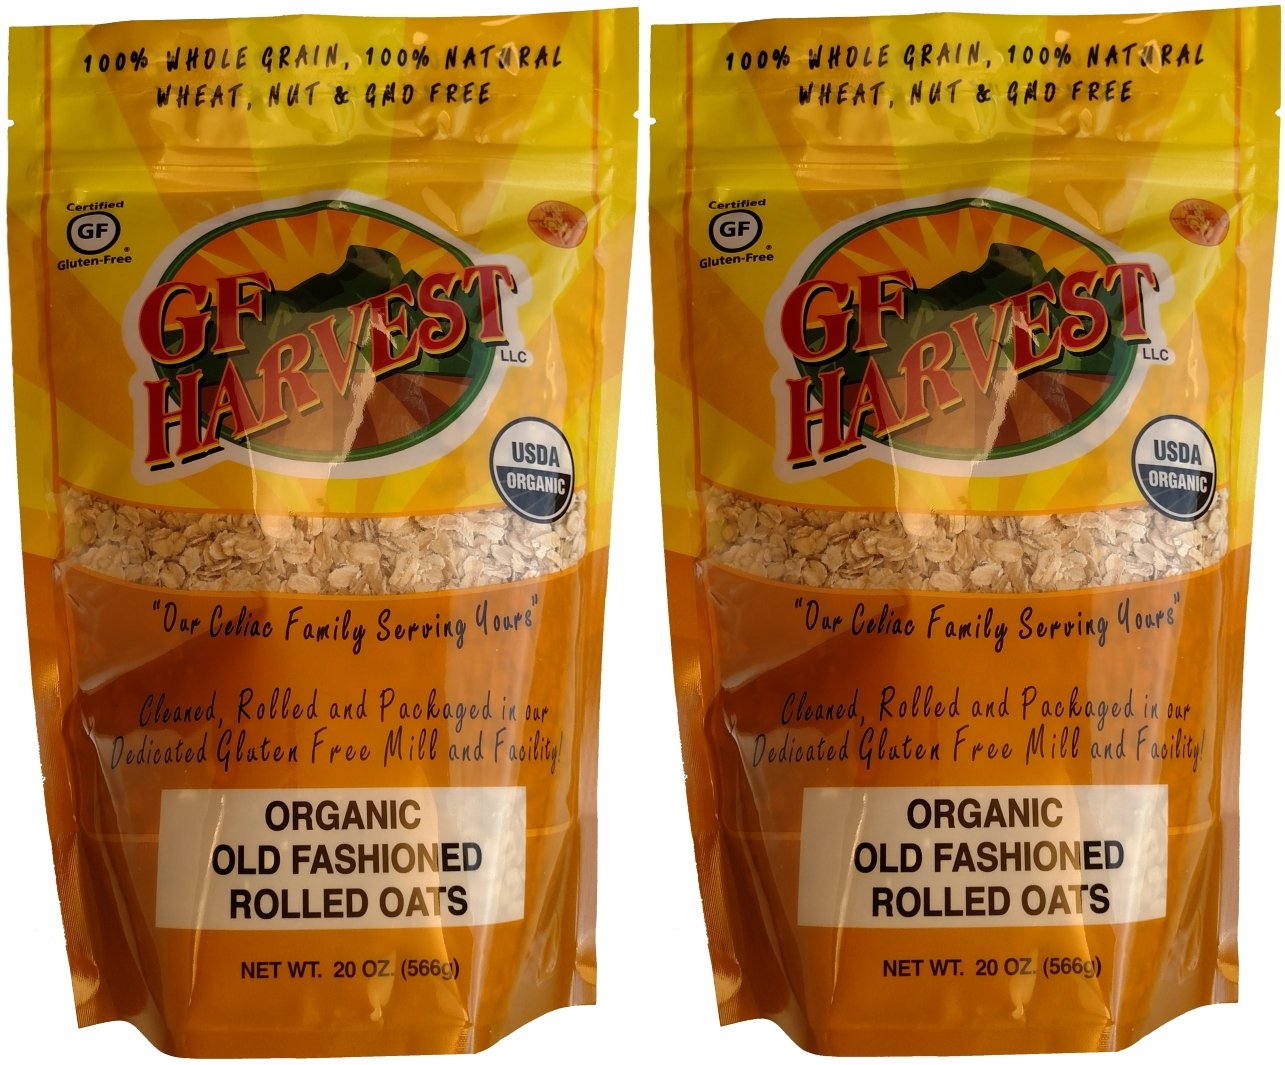 GF Harvest Gluten Free Certified Organic Rolled Oats, Non GMO, 20 oz Bag, Non-GMO, Certified Organic, 2 Count by GF Harvest (Image #1)